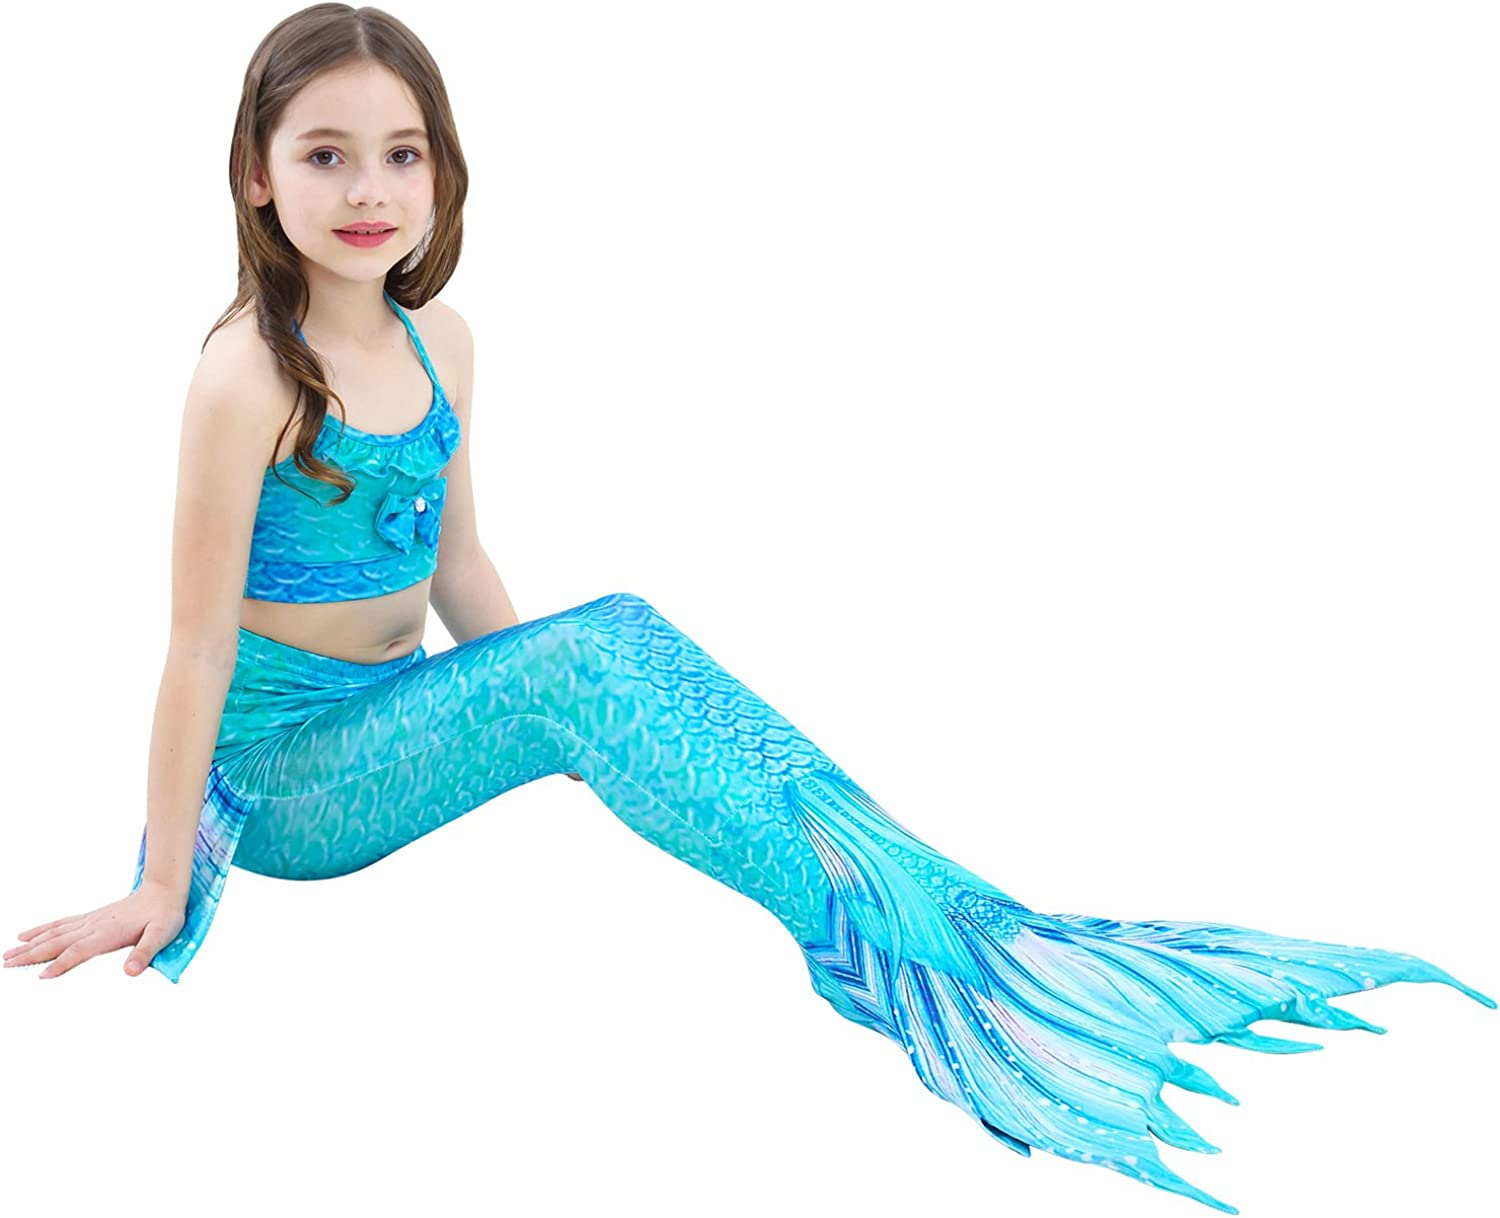 Wfundeals Mermaid Tails for Swimming with Monofin Swimsuit Costume Cosplay Princess Bikini Set